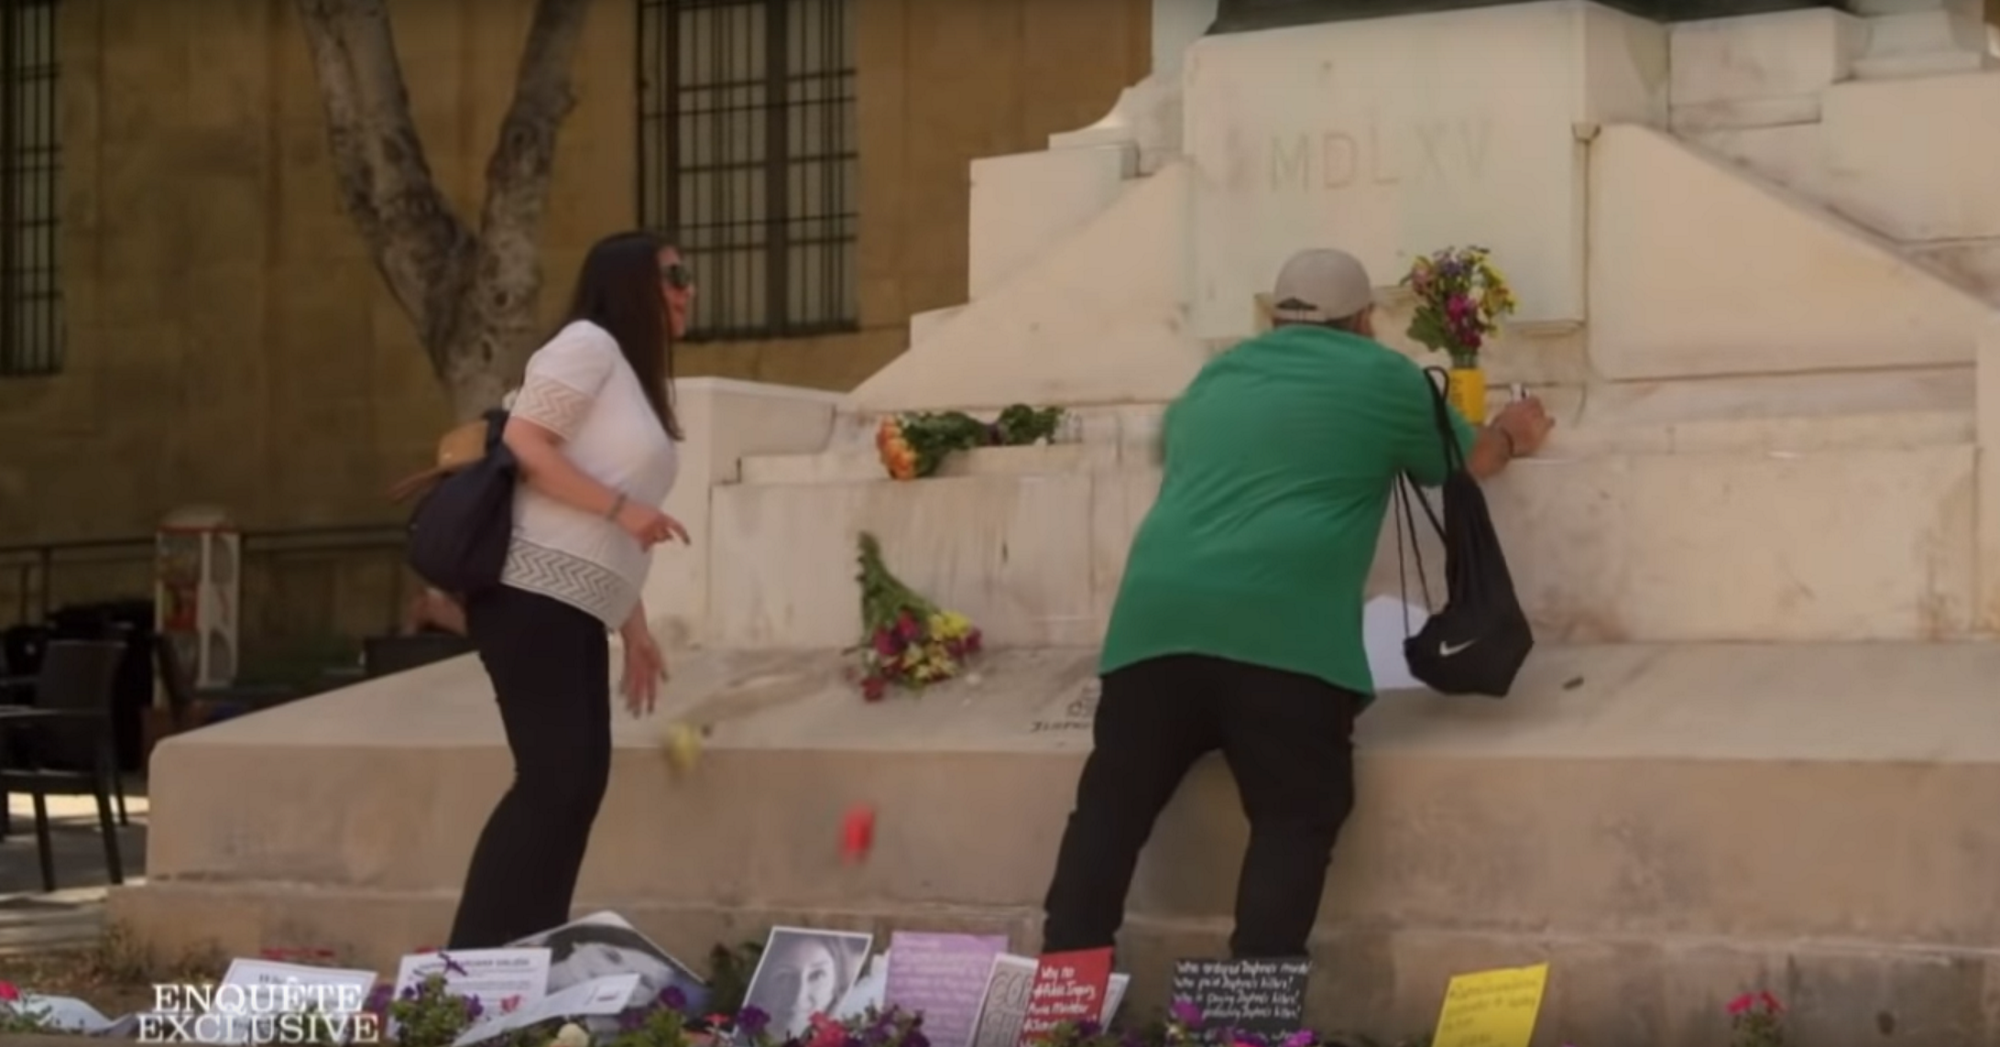 A man is filmed violently destroying a memorial to Daphne Caruana Galizia as her sister looks on in disbelief.